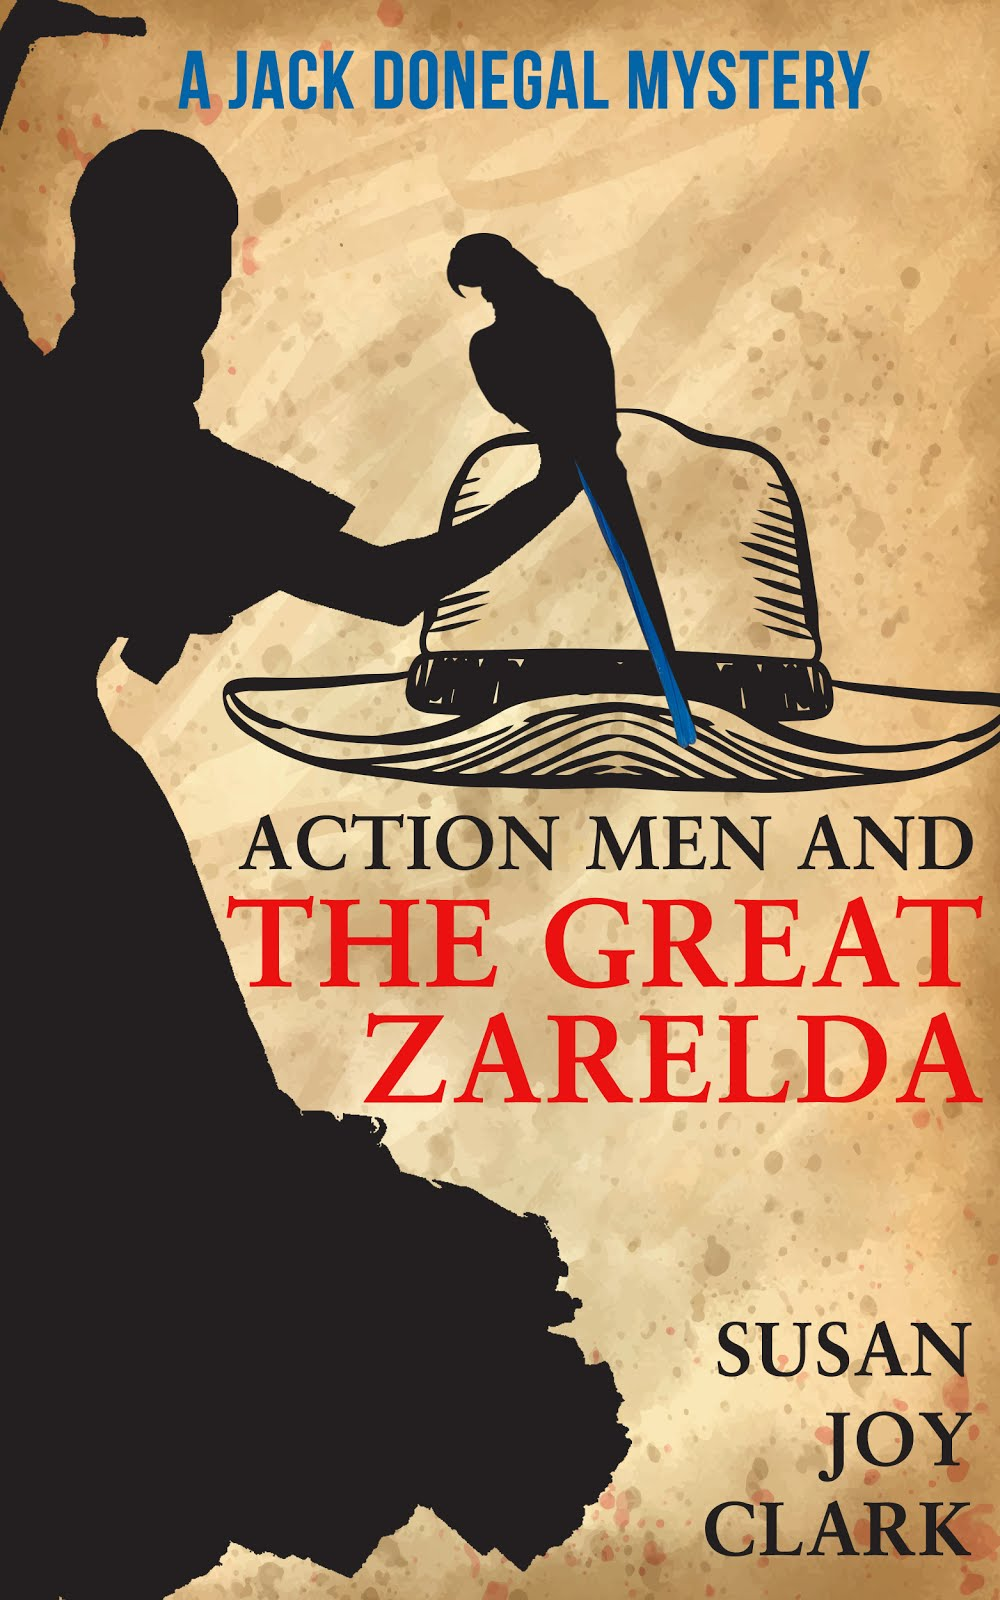 Action Men and the Great Zarelda